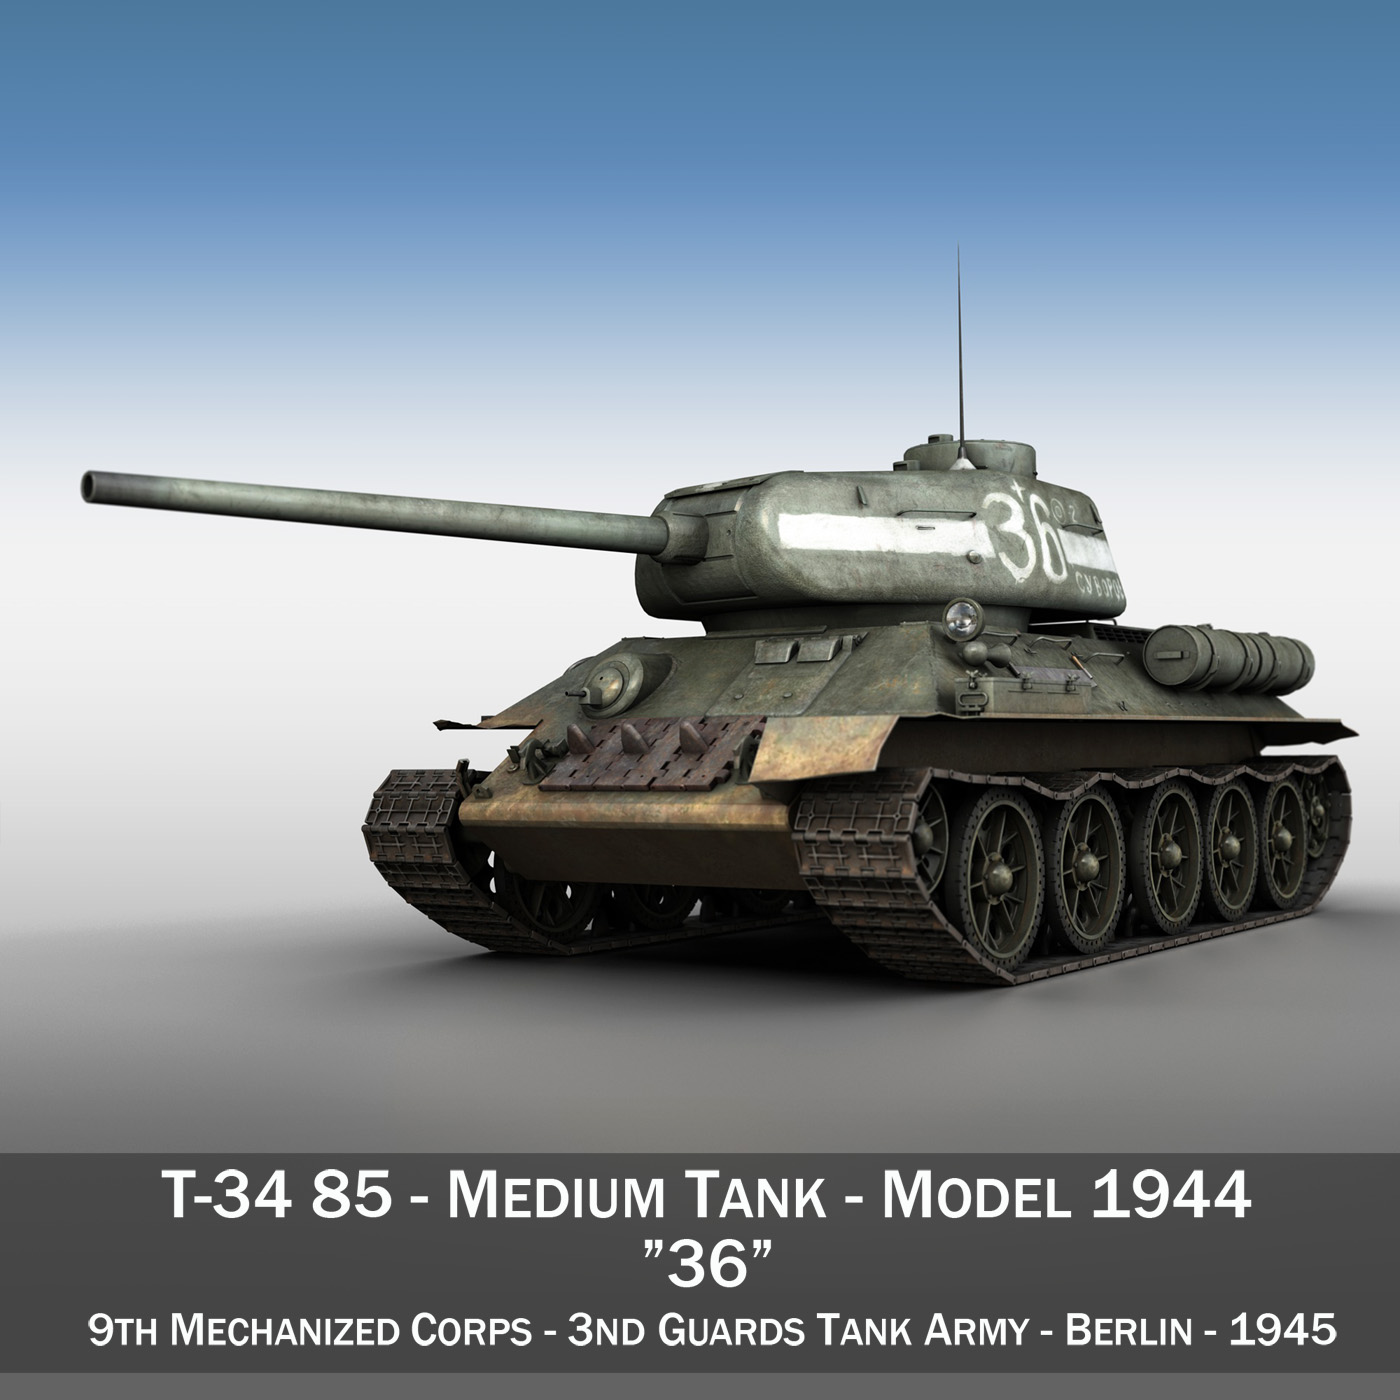 t-34 85 - sovet orta tank - 36 3d model 3ds c4d lwo obj 264142